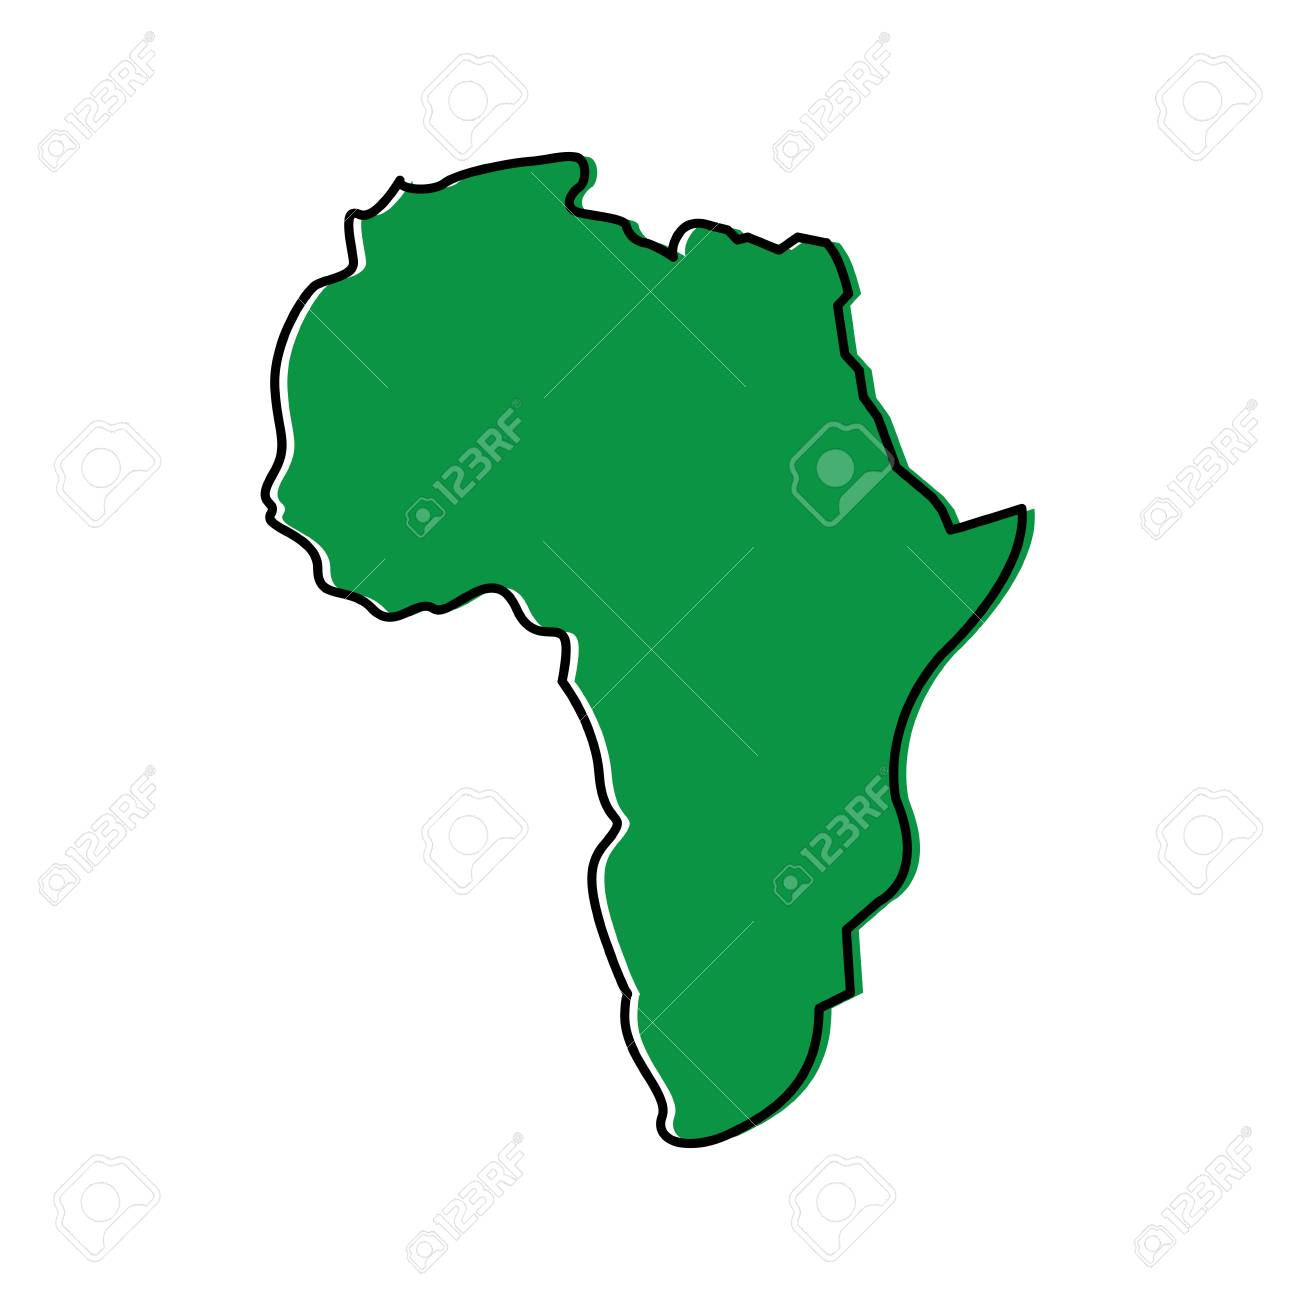 Map Of Africa Continent Silhouette On A White Background Vector Illustration Green Design Image Stock